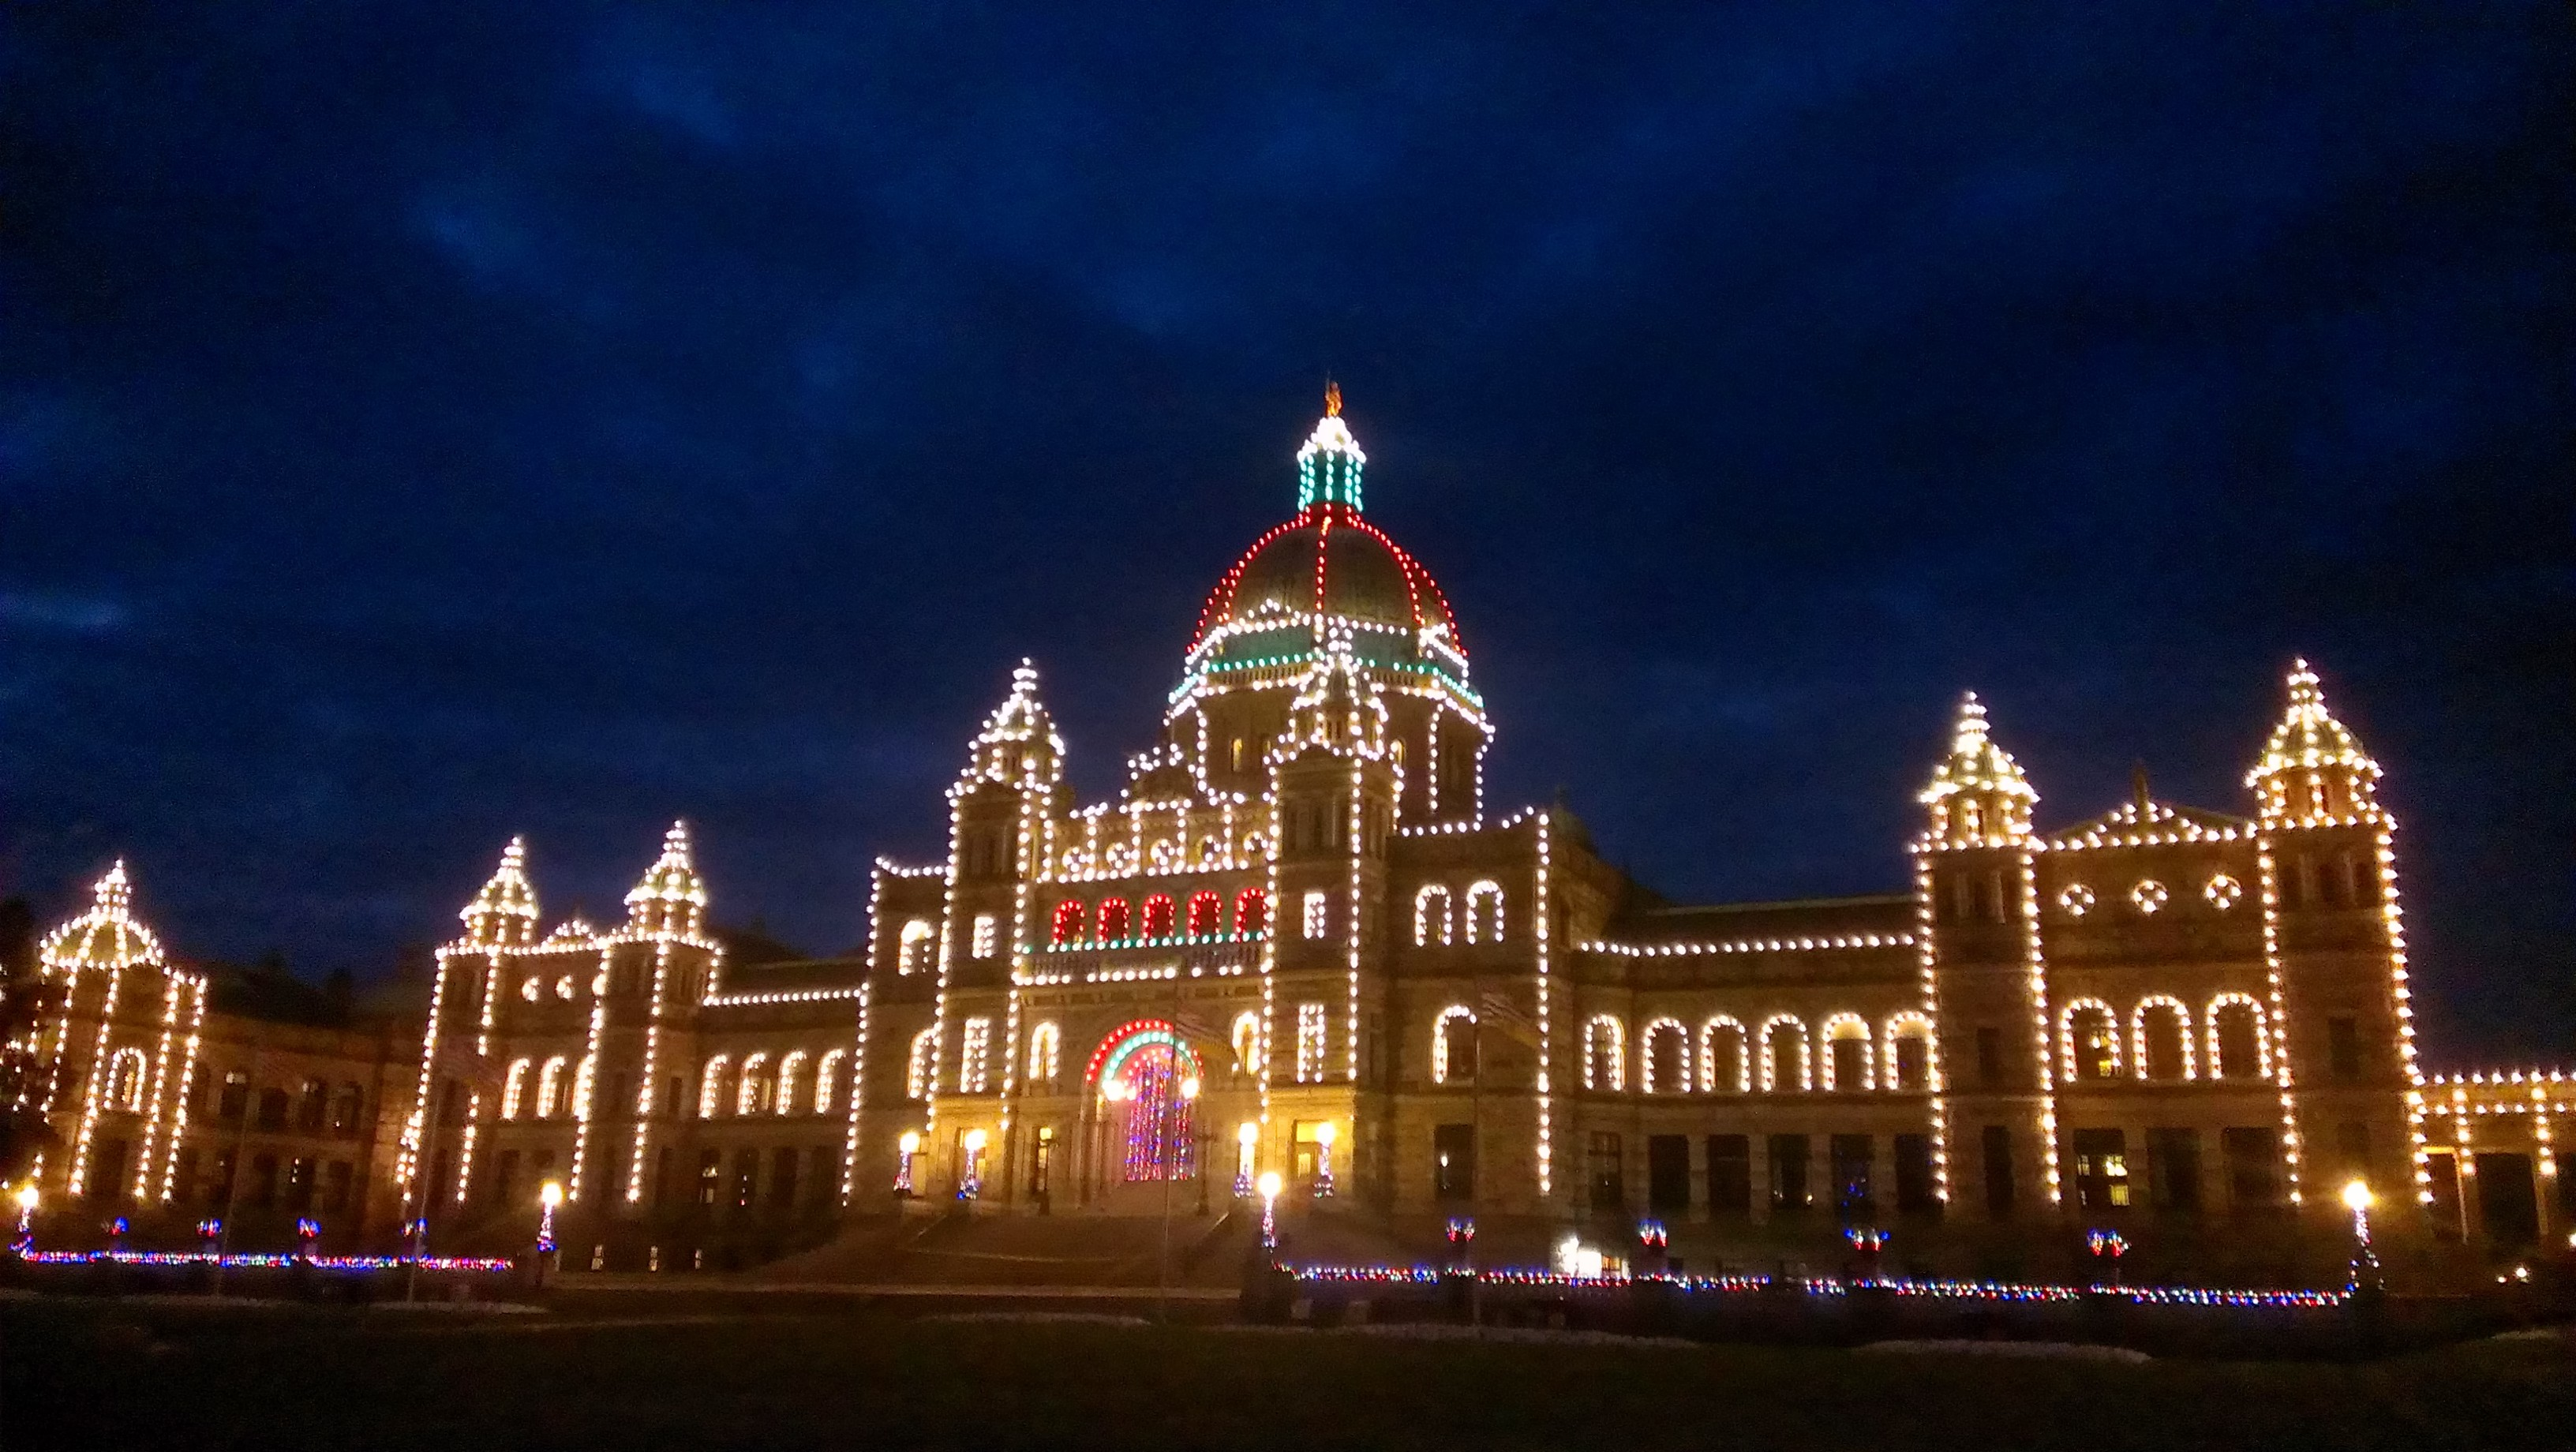 British Columbia's Provincial legislature buildings decorated for Christmas.